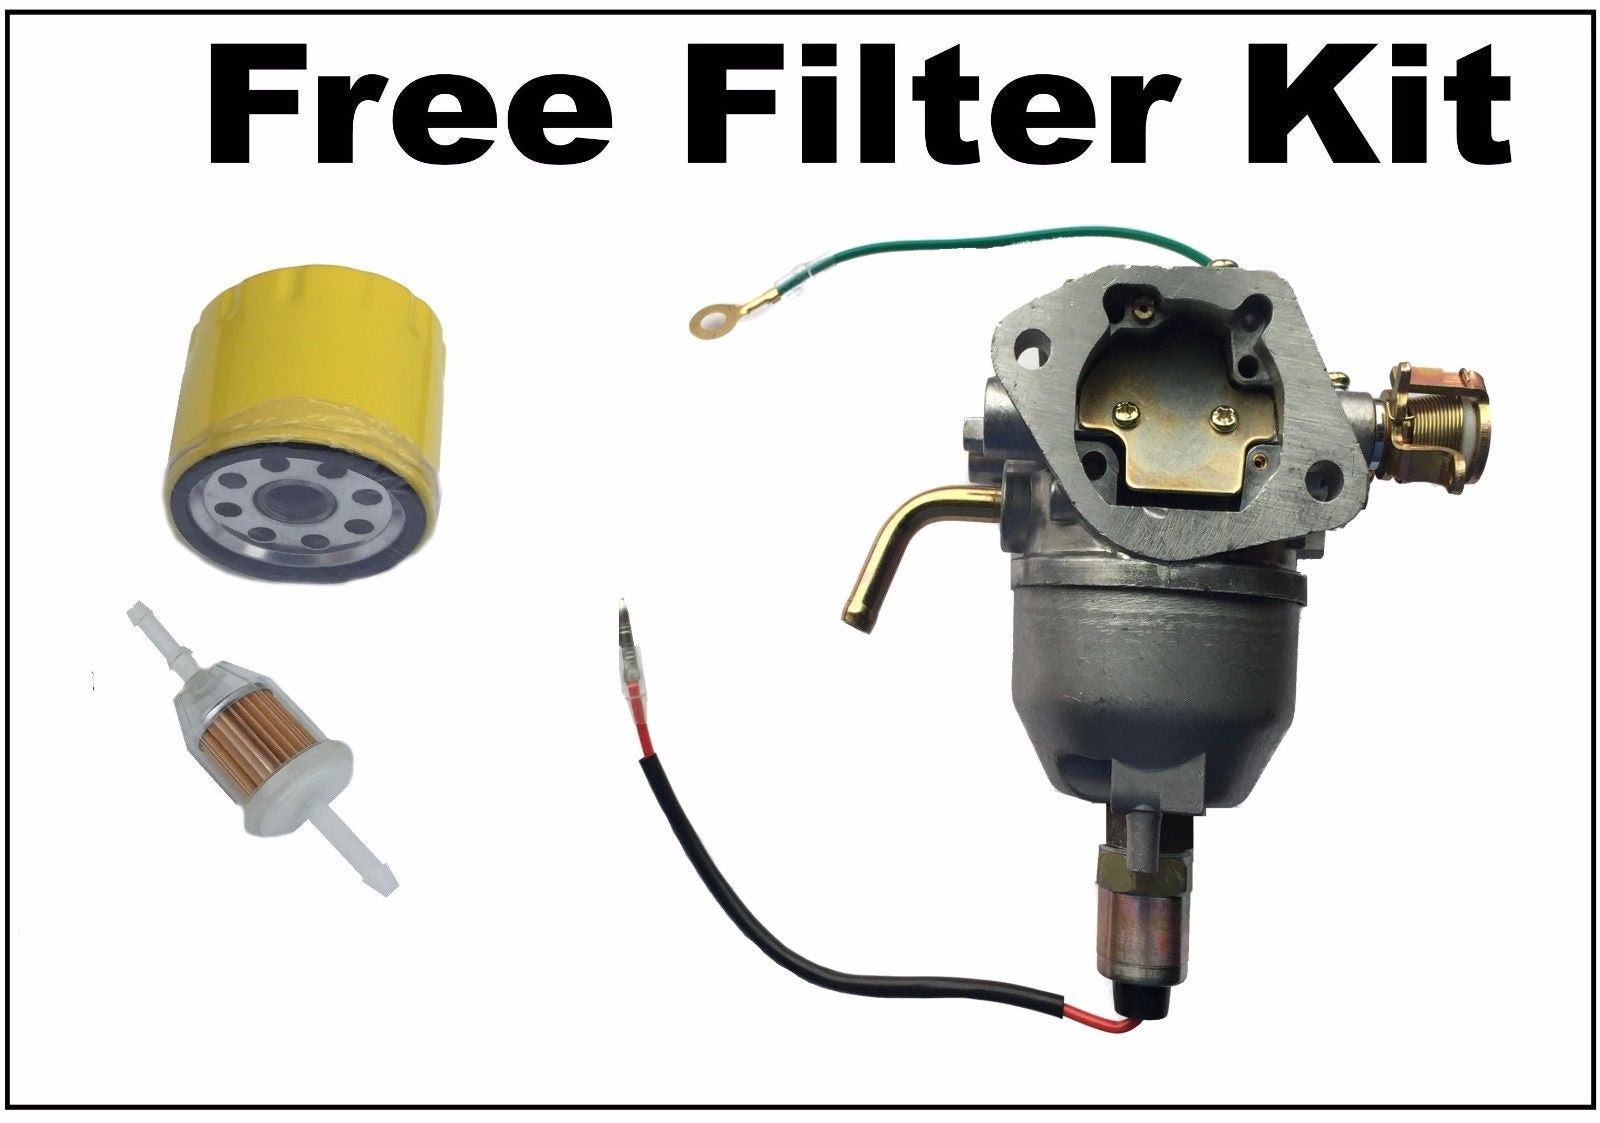 Carburetor Fits Kohler CH18 - CH26 With Free Filter Kit Nikki Carb - AE-Power